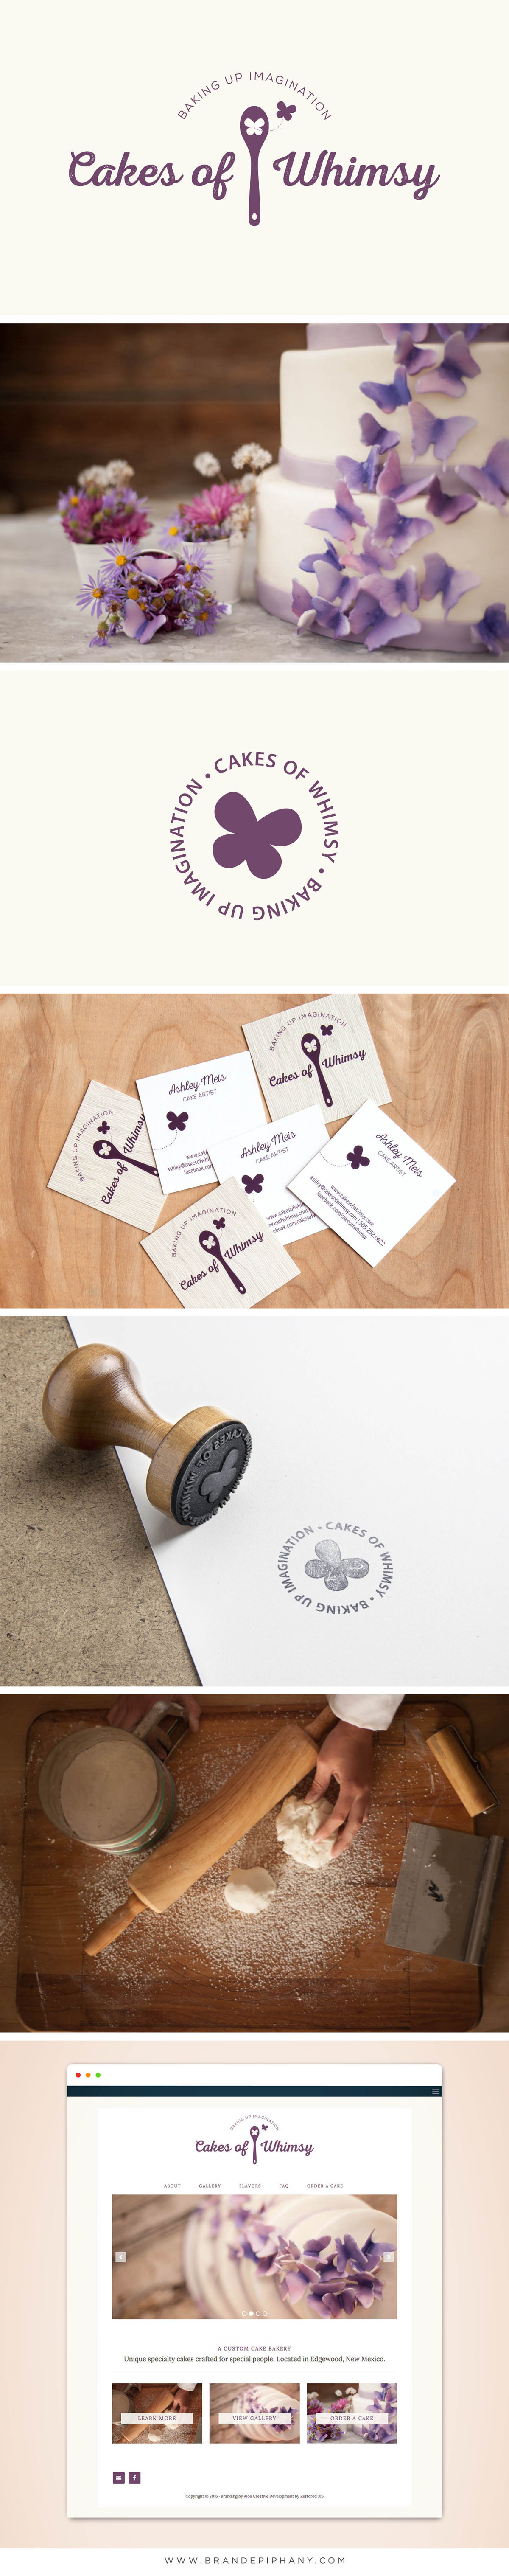 Logo Design, Business Card Design, Website Design for Cake Bakery